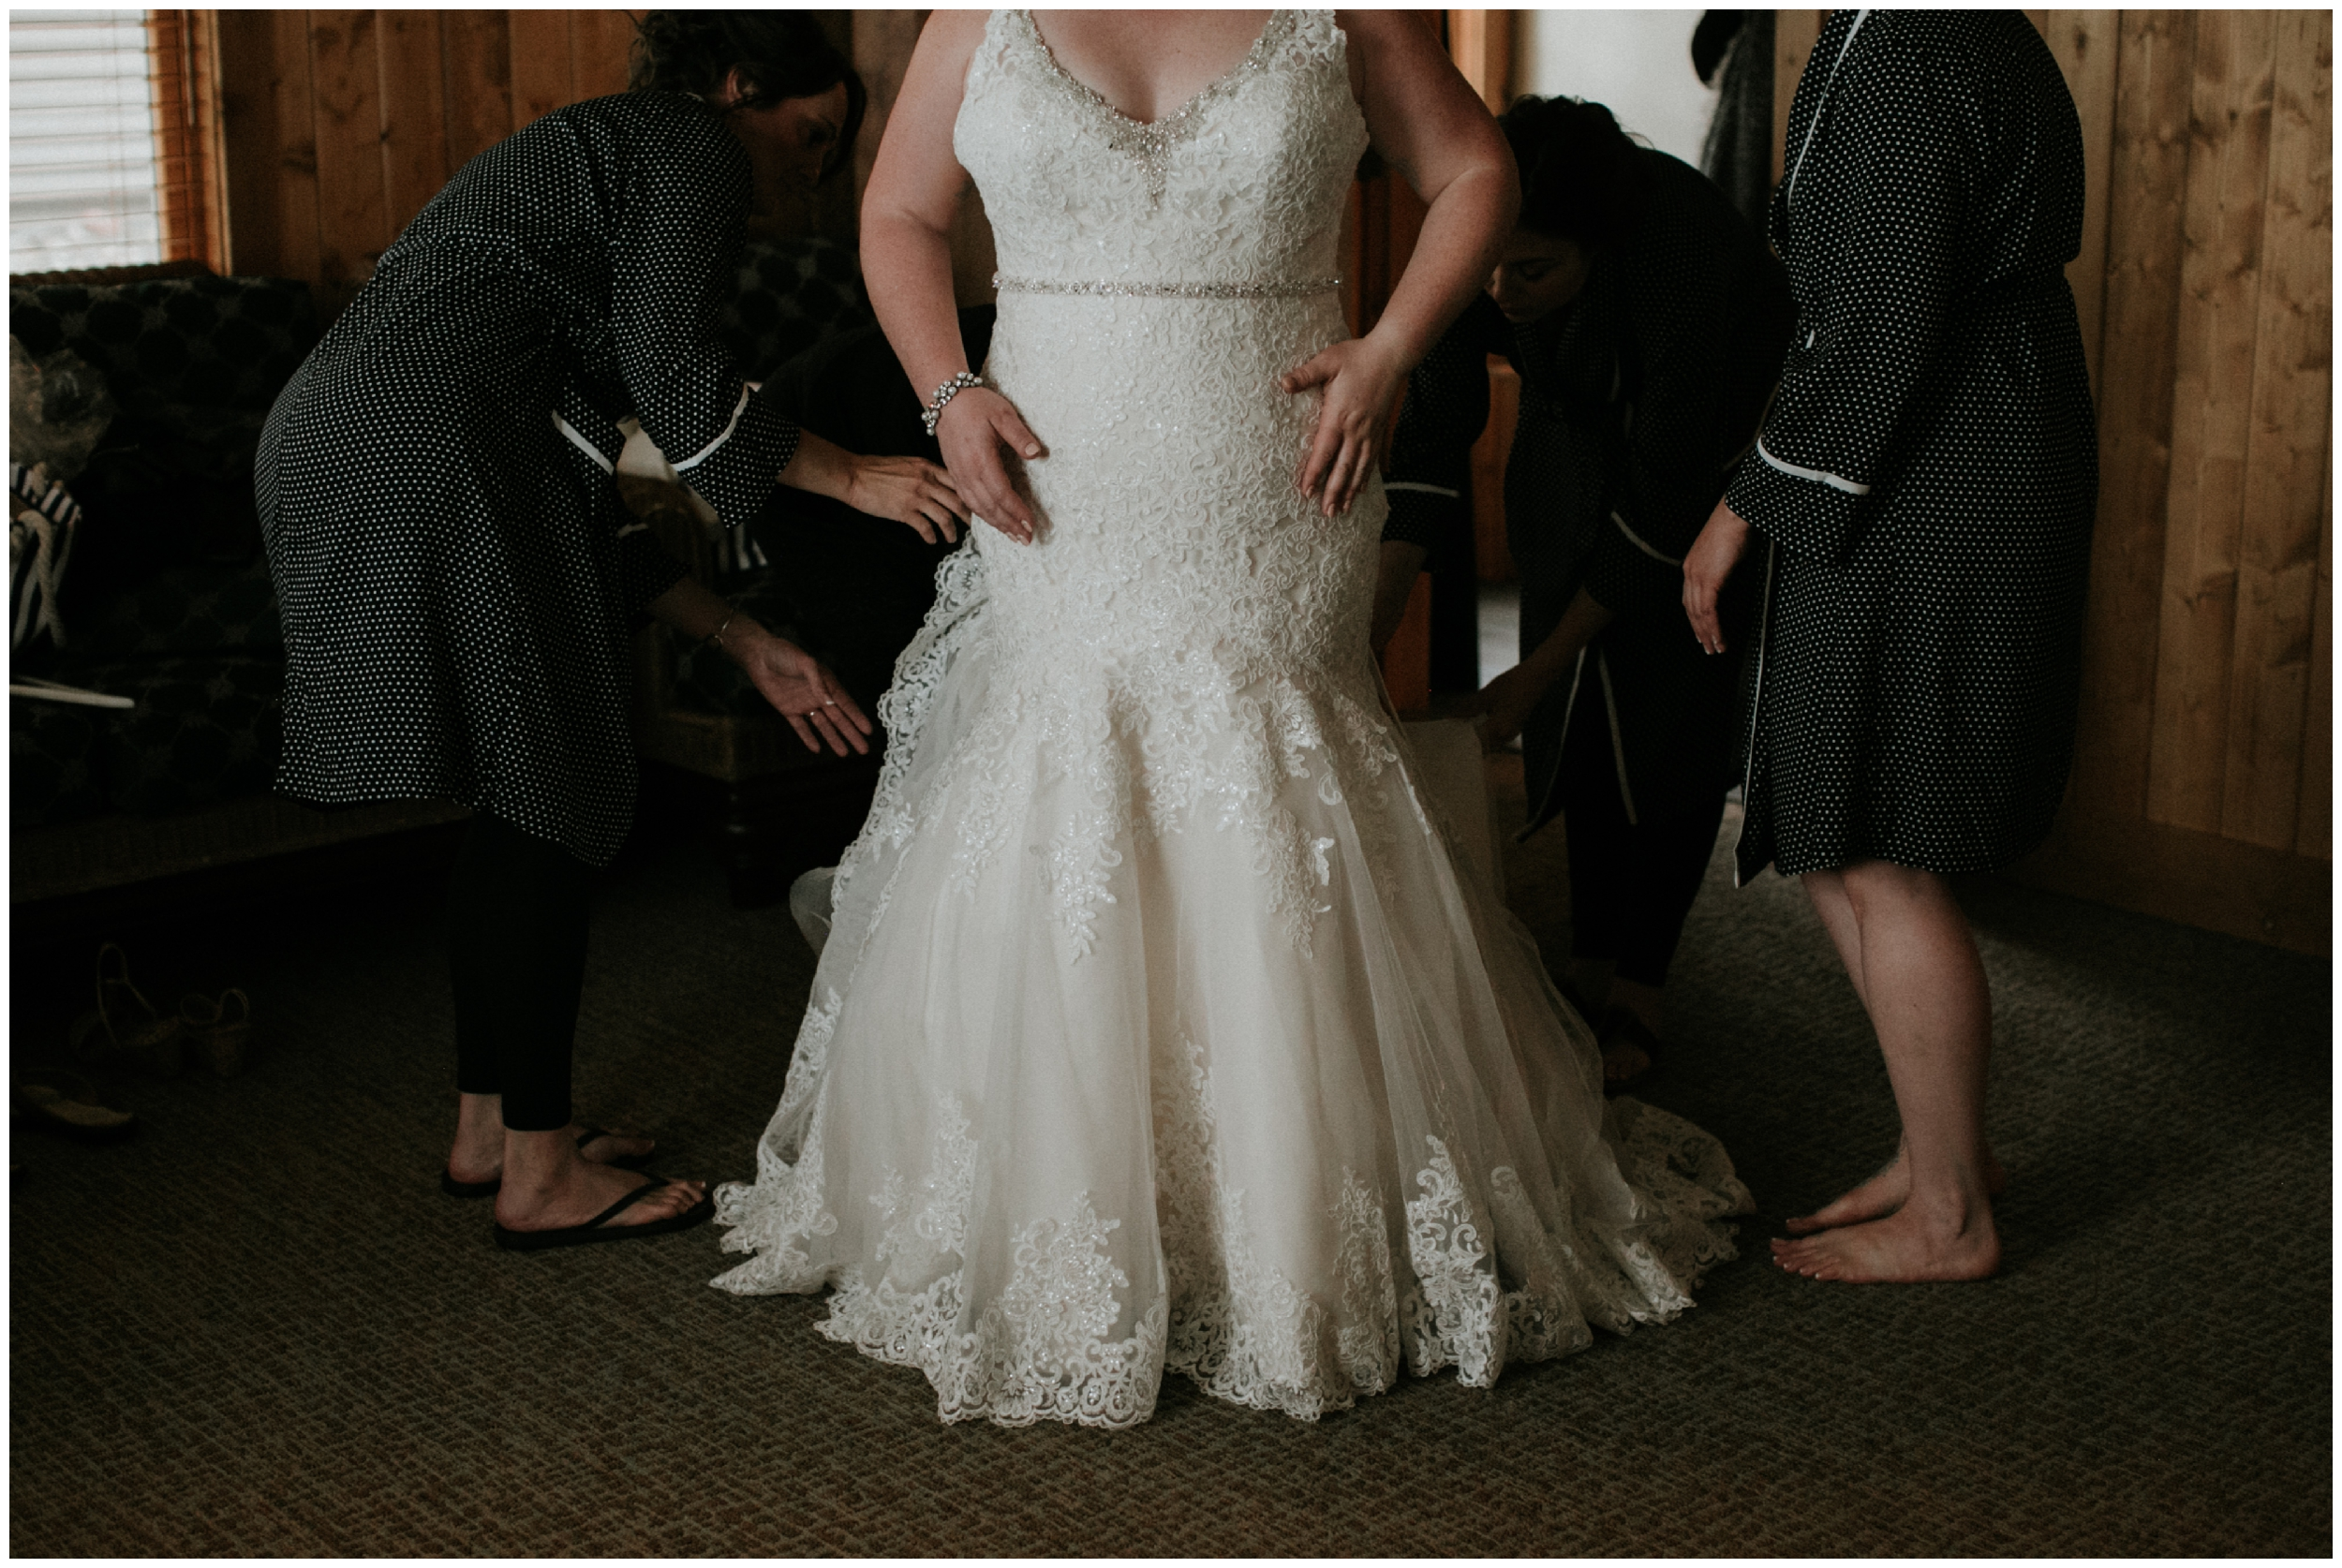 Bride getting into wedding dress at Madden's resort